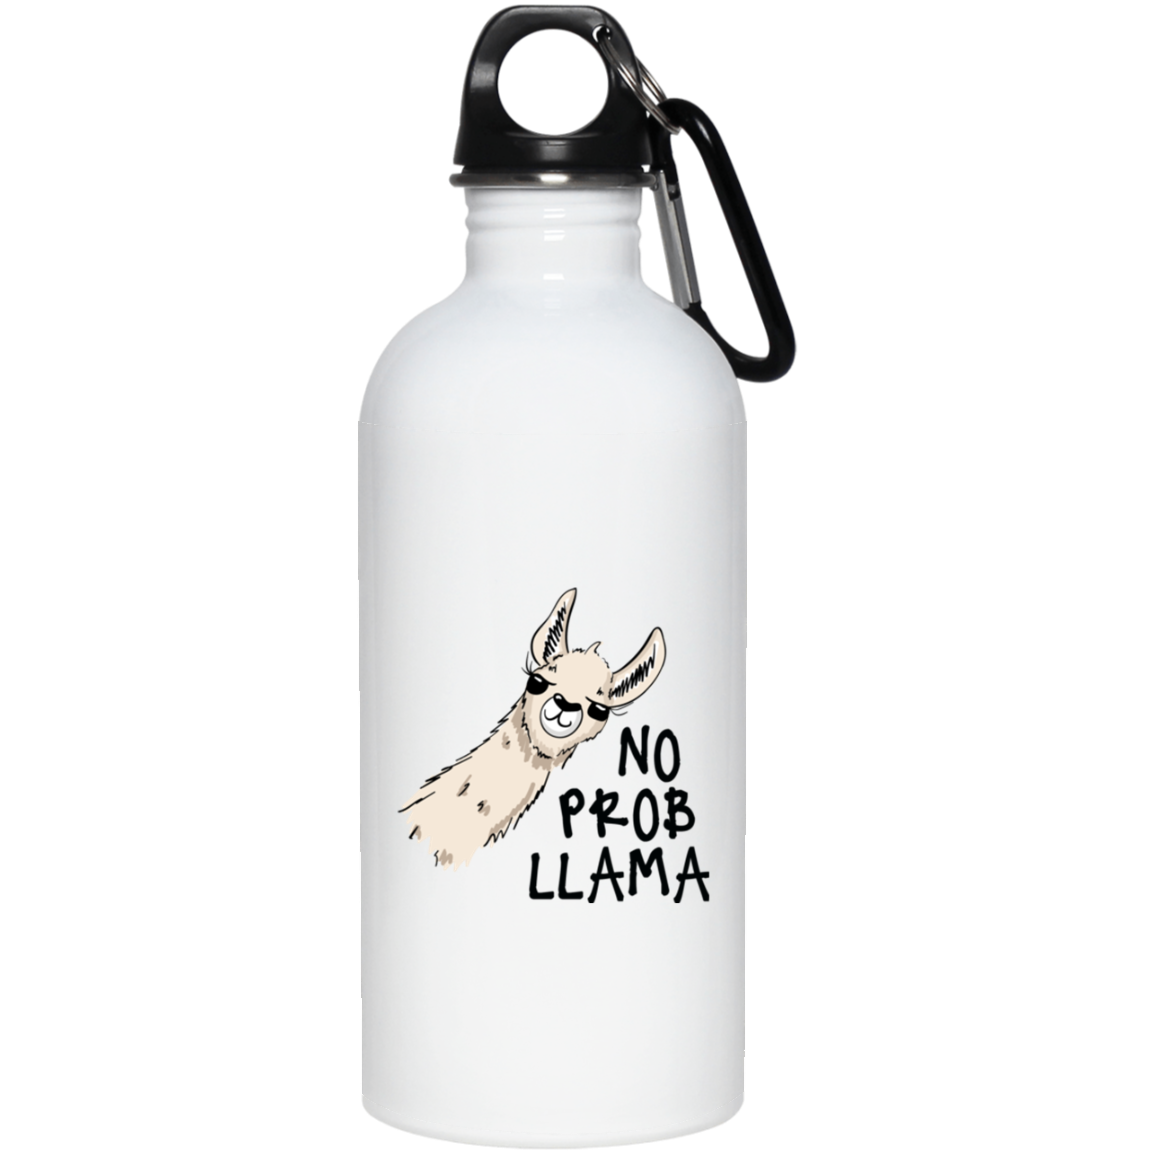 No Problama White Stainless Steel Water Bottle